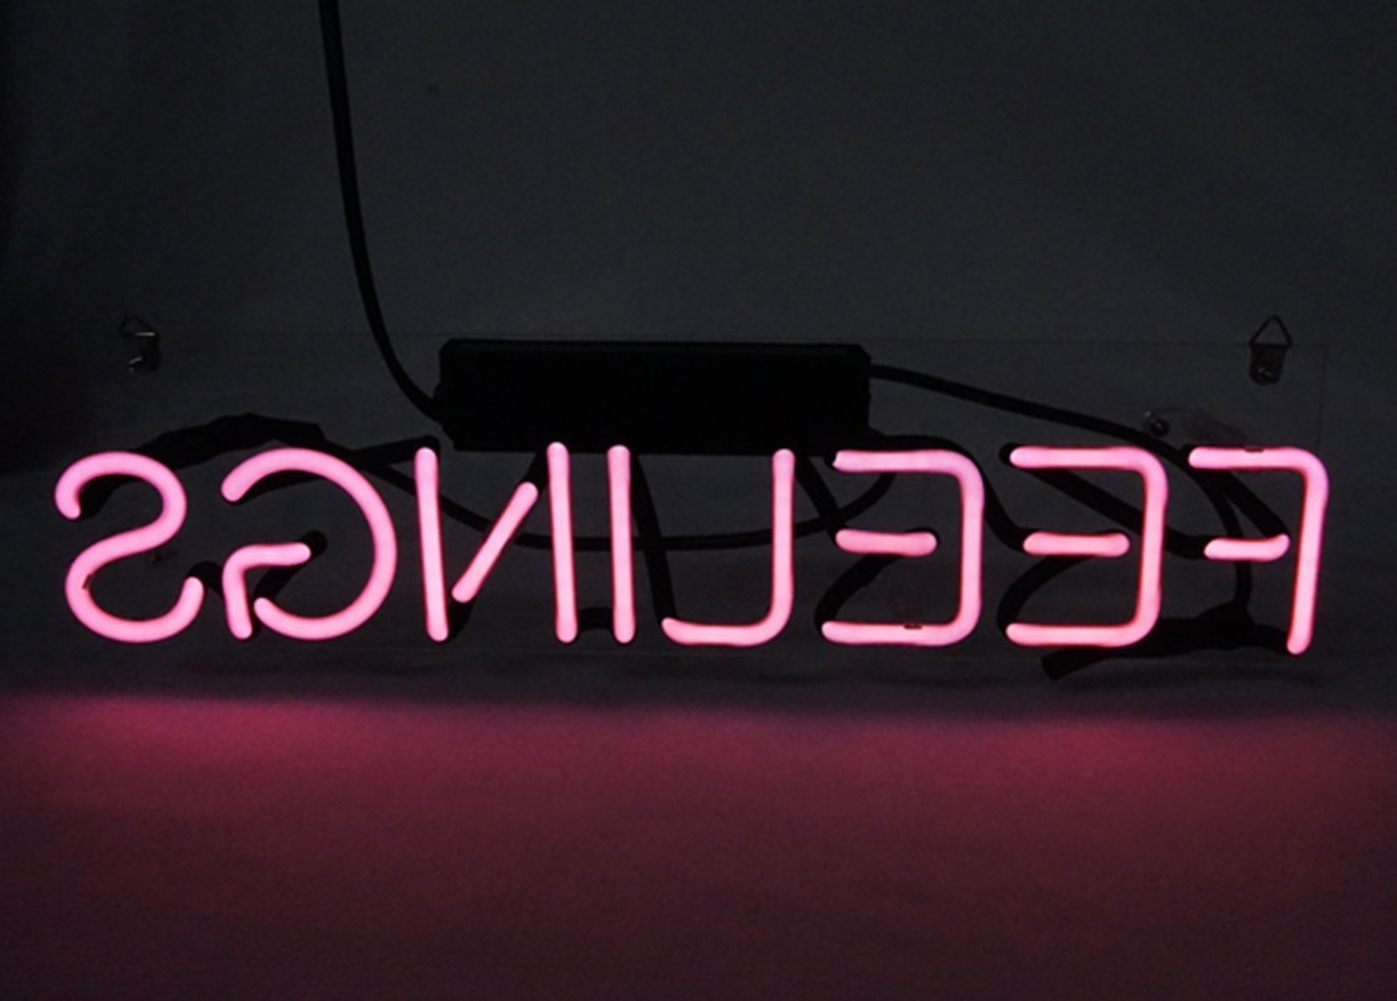 Neon Wall Art Uk Throughout Best And Newest New Love Neon Sign 'feelings' Cool Led Lamp Light Decoration  (View 8 of 15)